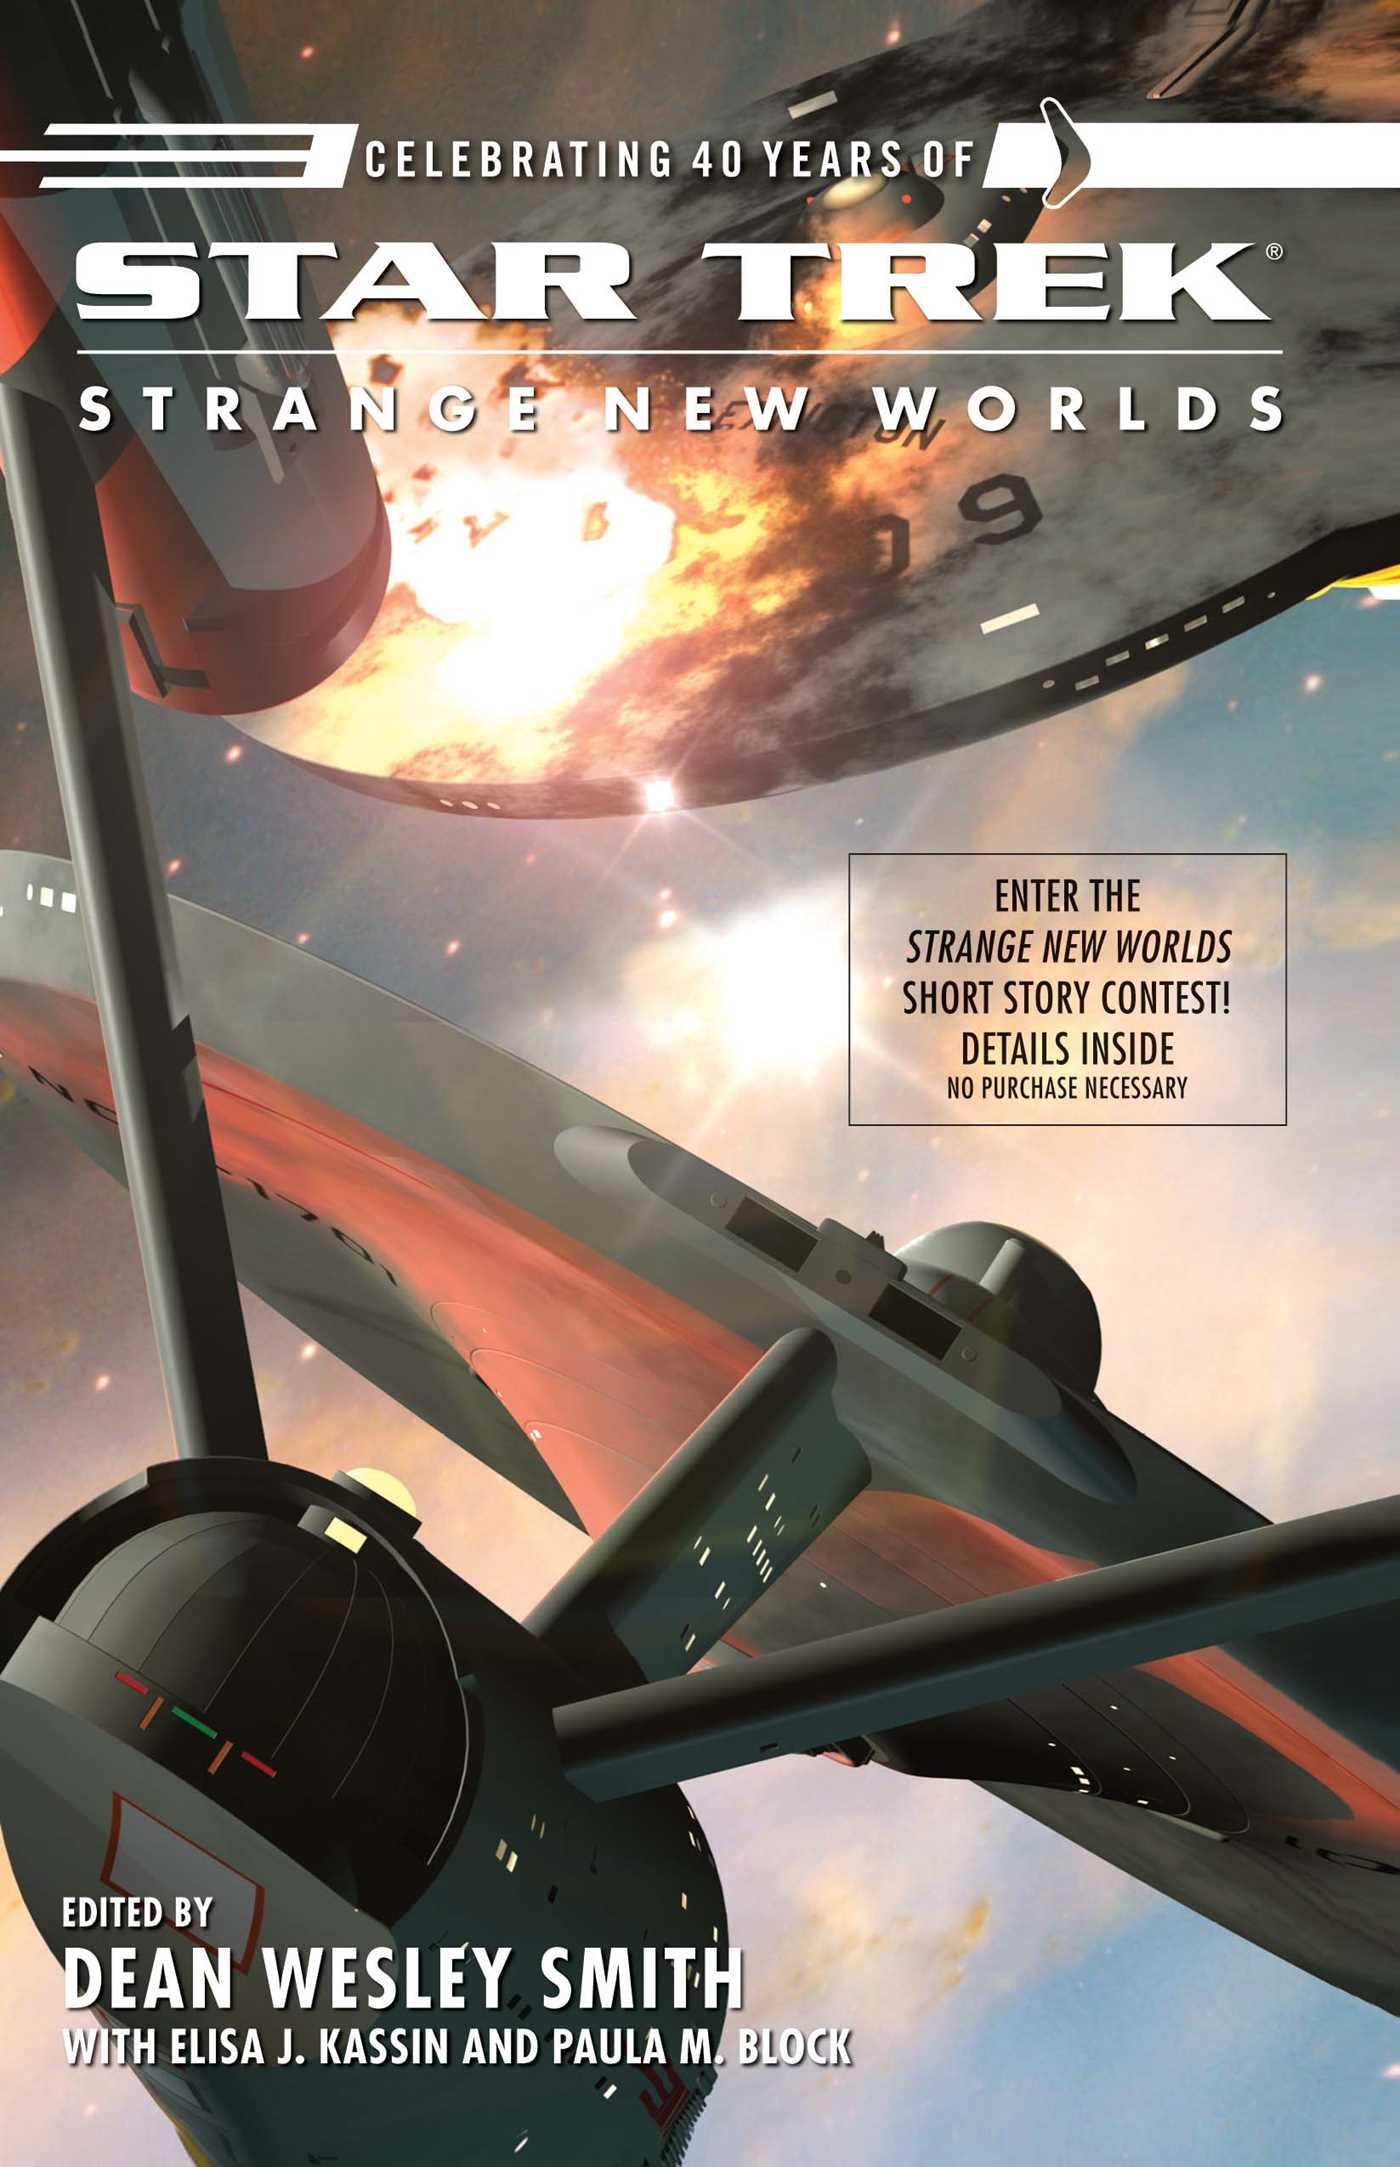 Star trek strange new worlds ix 9781416520481 hr